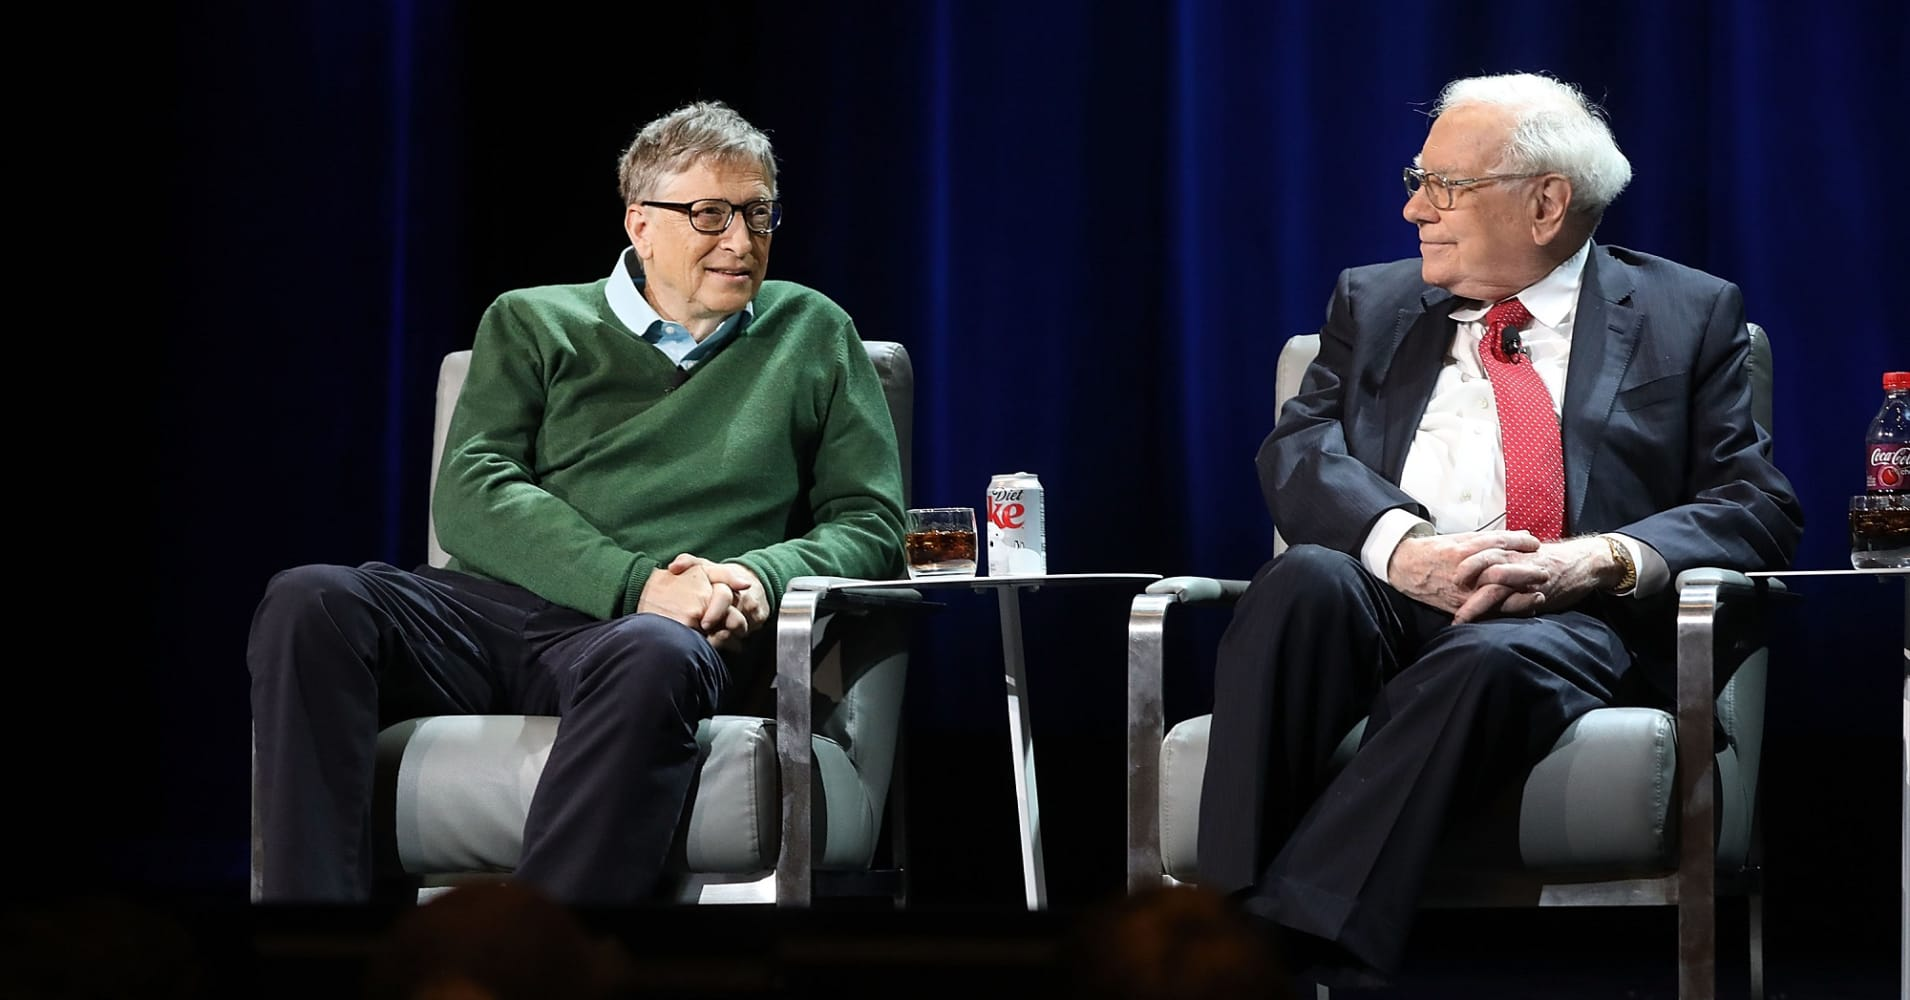 Warren Buffett and Bill Gates speak at Columbia University